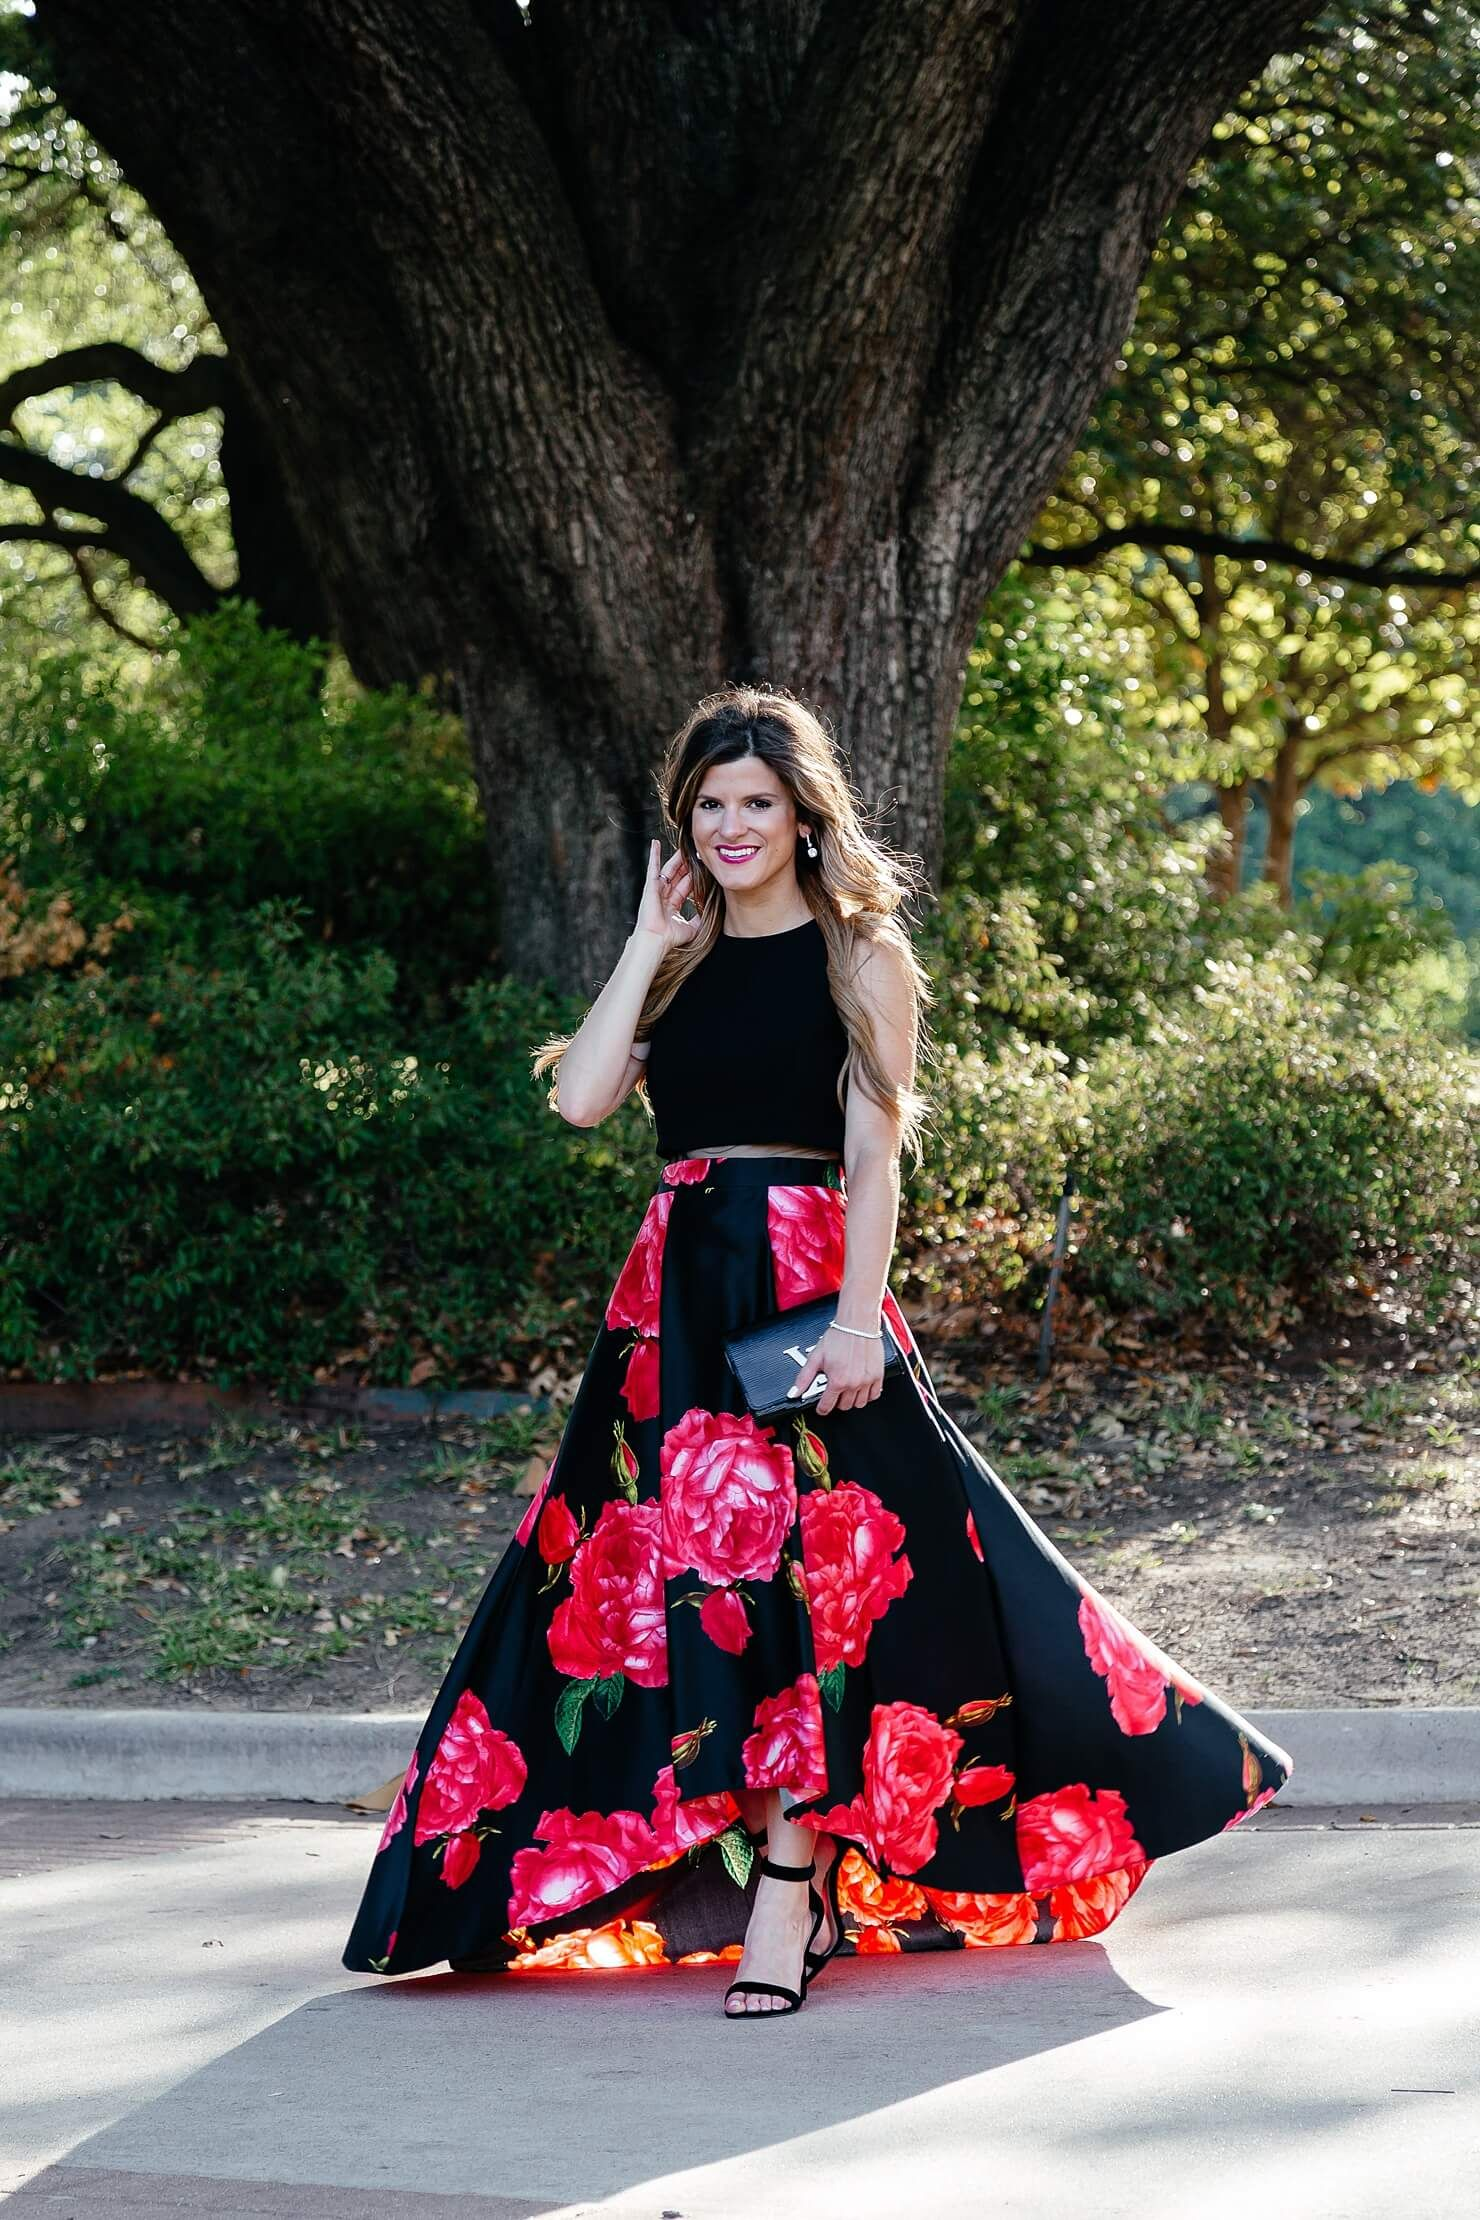 ab7abf5517 Black rose print asymmetrical maxi dress+black ankle strap heeled sandals+ black clutch+earrings. Summer Black Tie Wedding Guest Outfit 2017